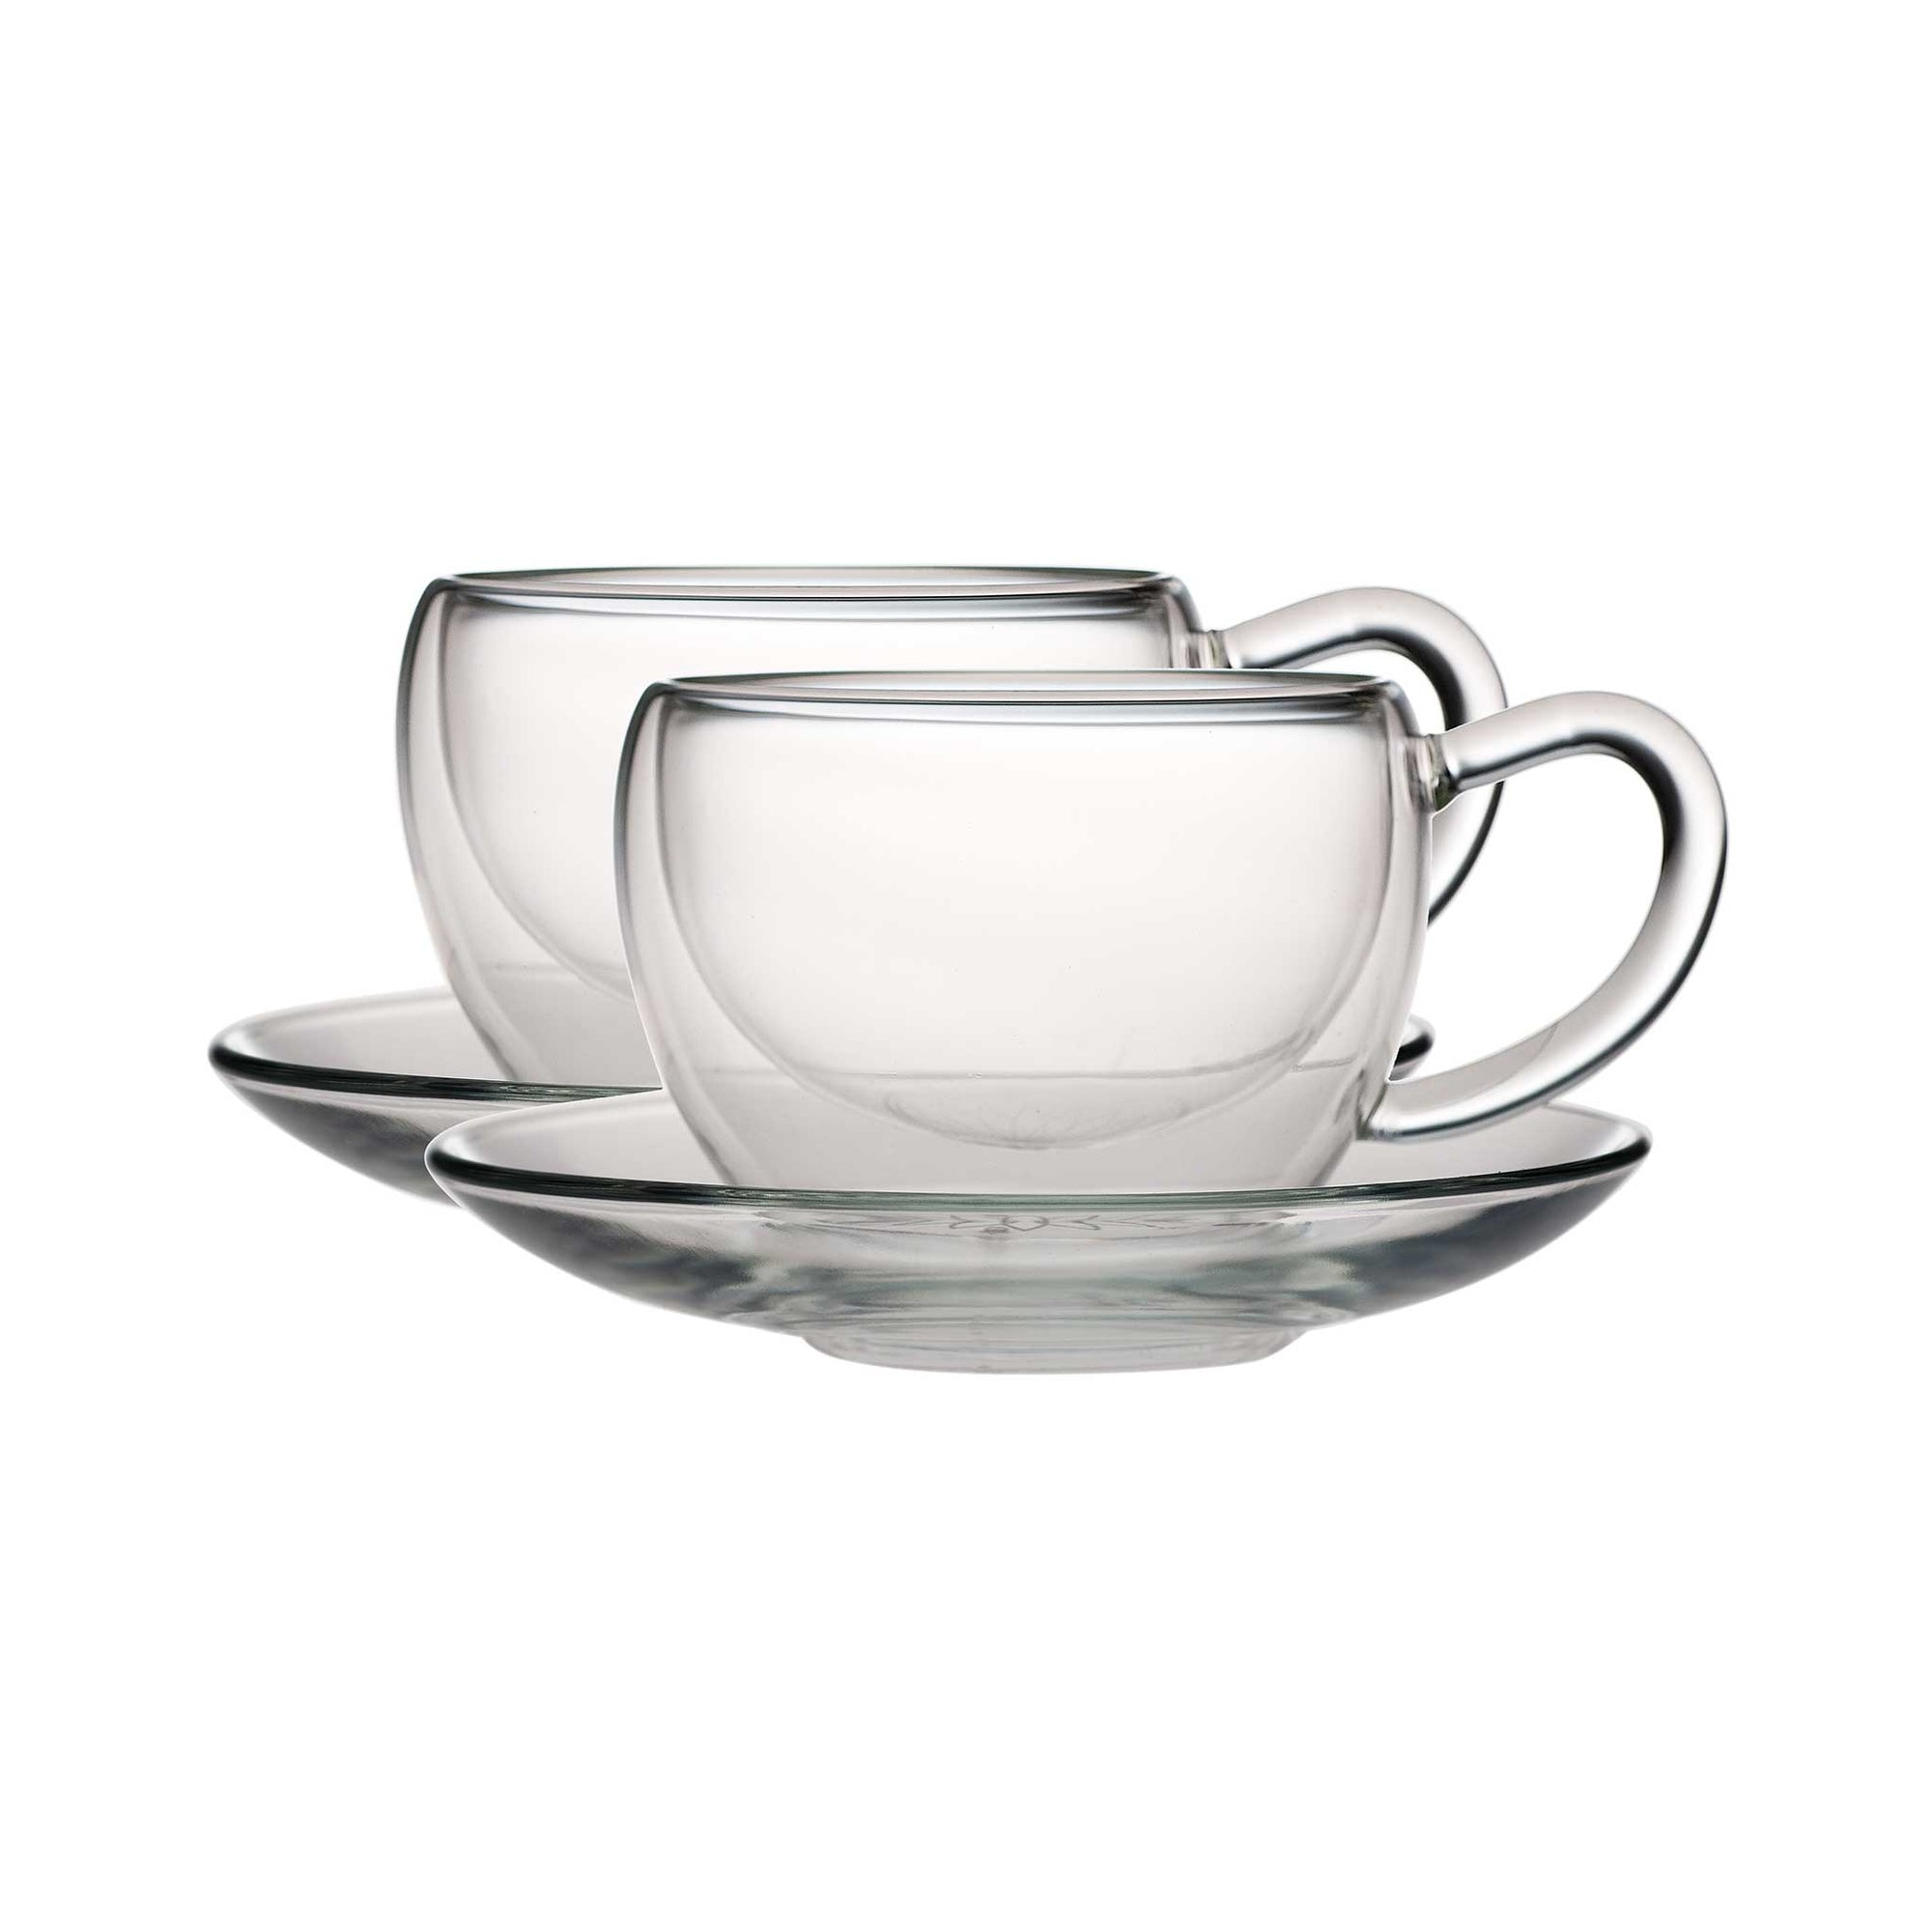 Teaposy socrates double-walled glass tea cup+saucer set